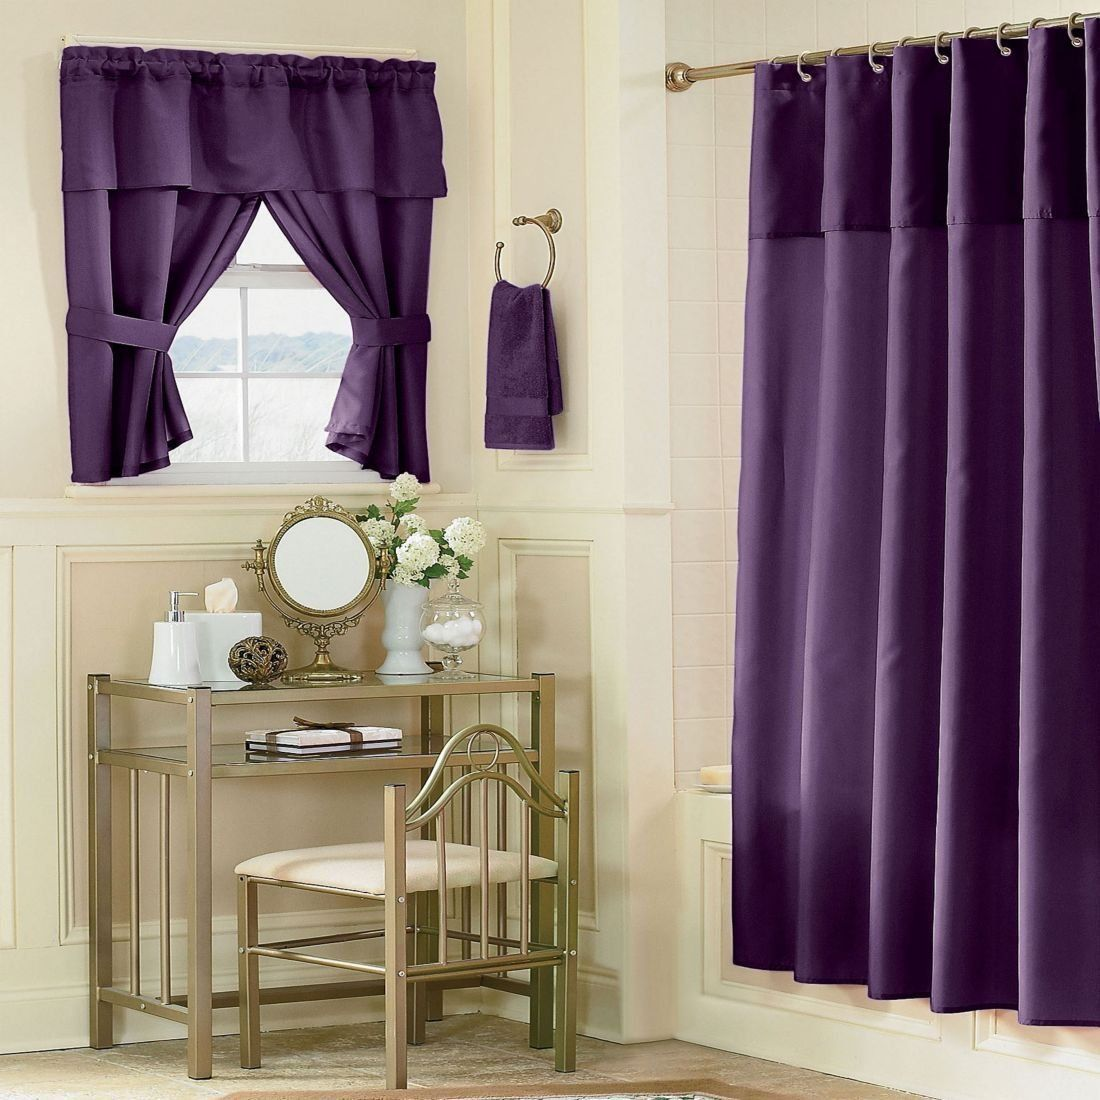 10 best images about purple bathroom on pinterest | furniture